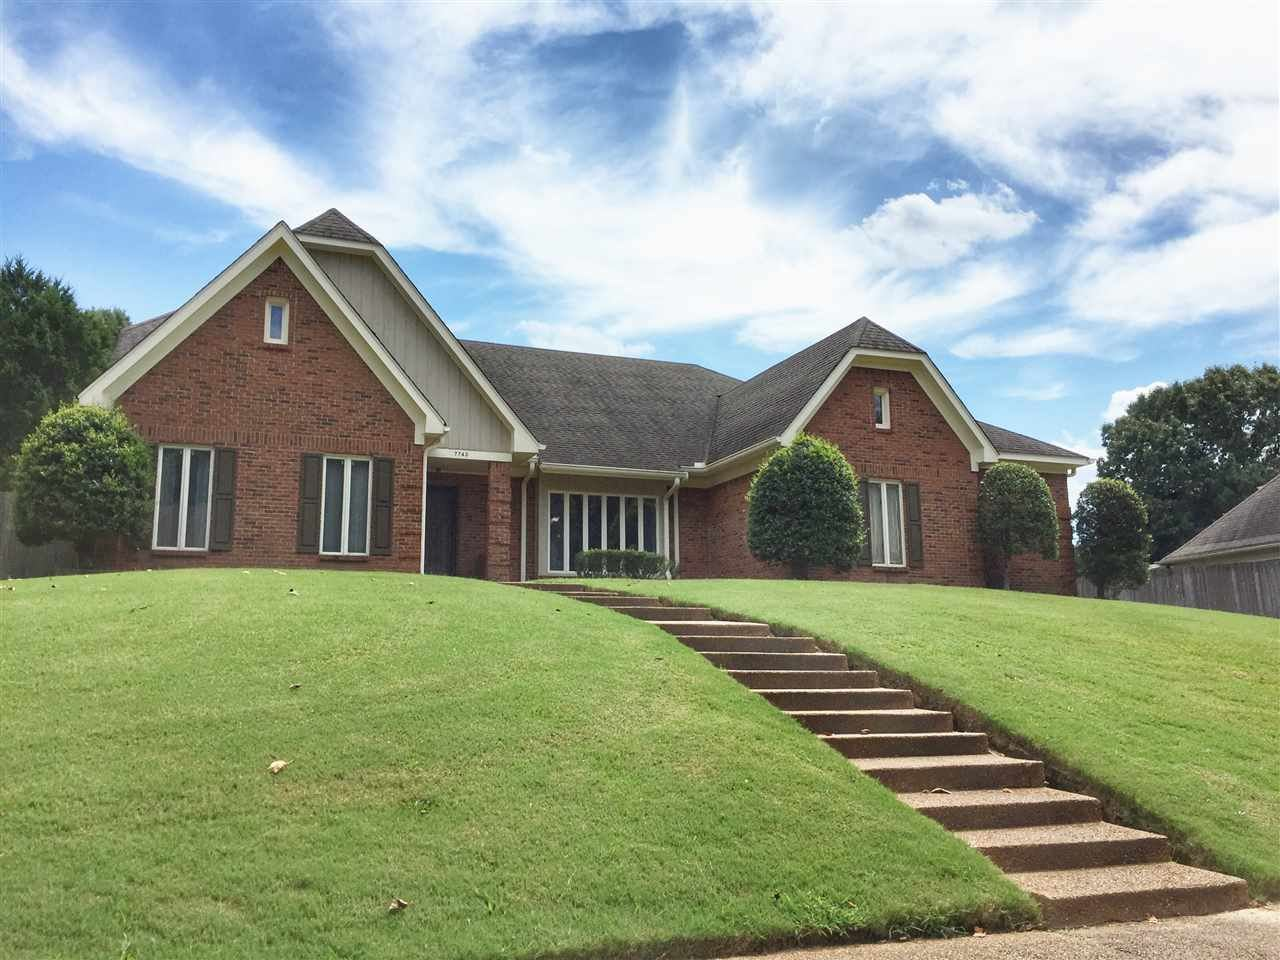 7743 FOSTER RIDGE RD, Germantown, TN 38138 - MLS#: 10083197